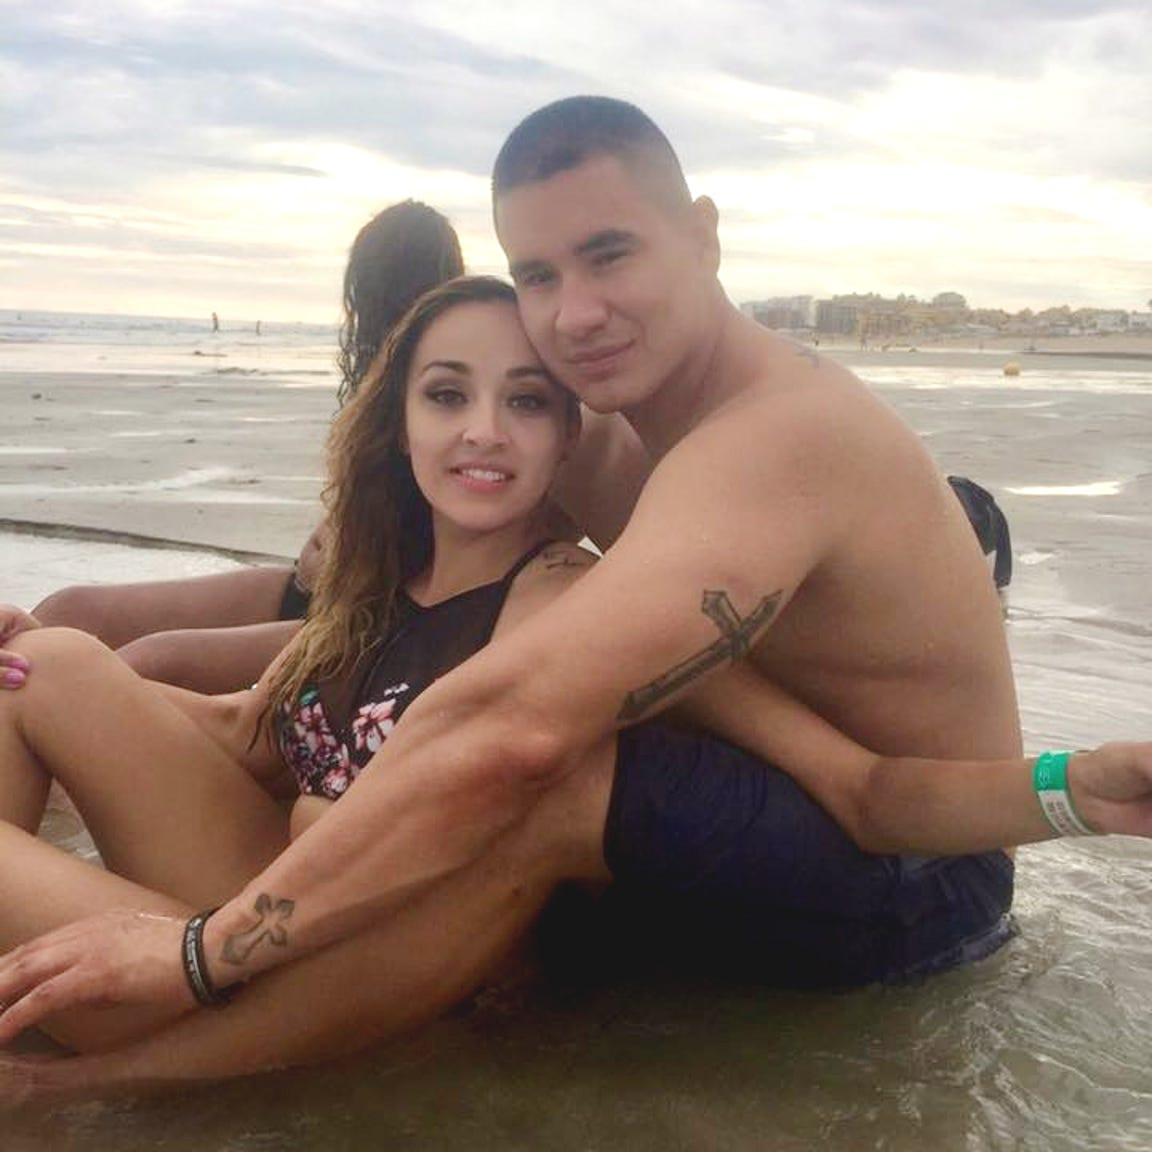 Jovanna and Frank Calzadillas while on vacation a month before the shooting at the Route 91 Harvest Festival in Las Vegas.